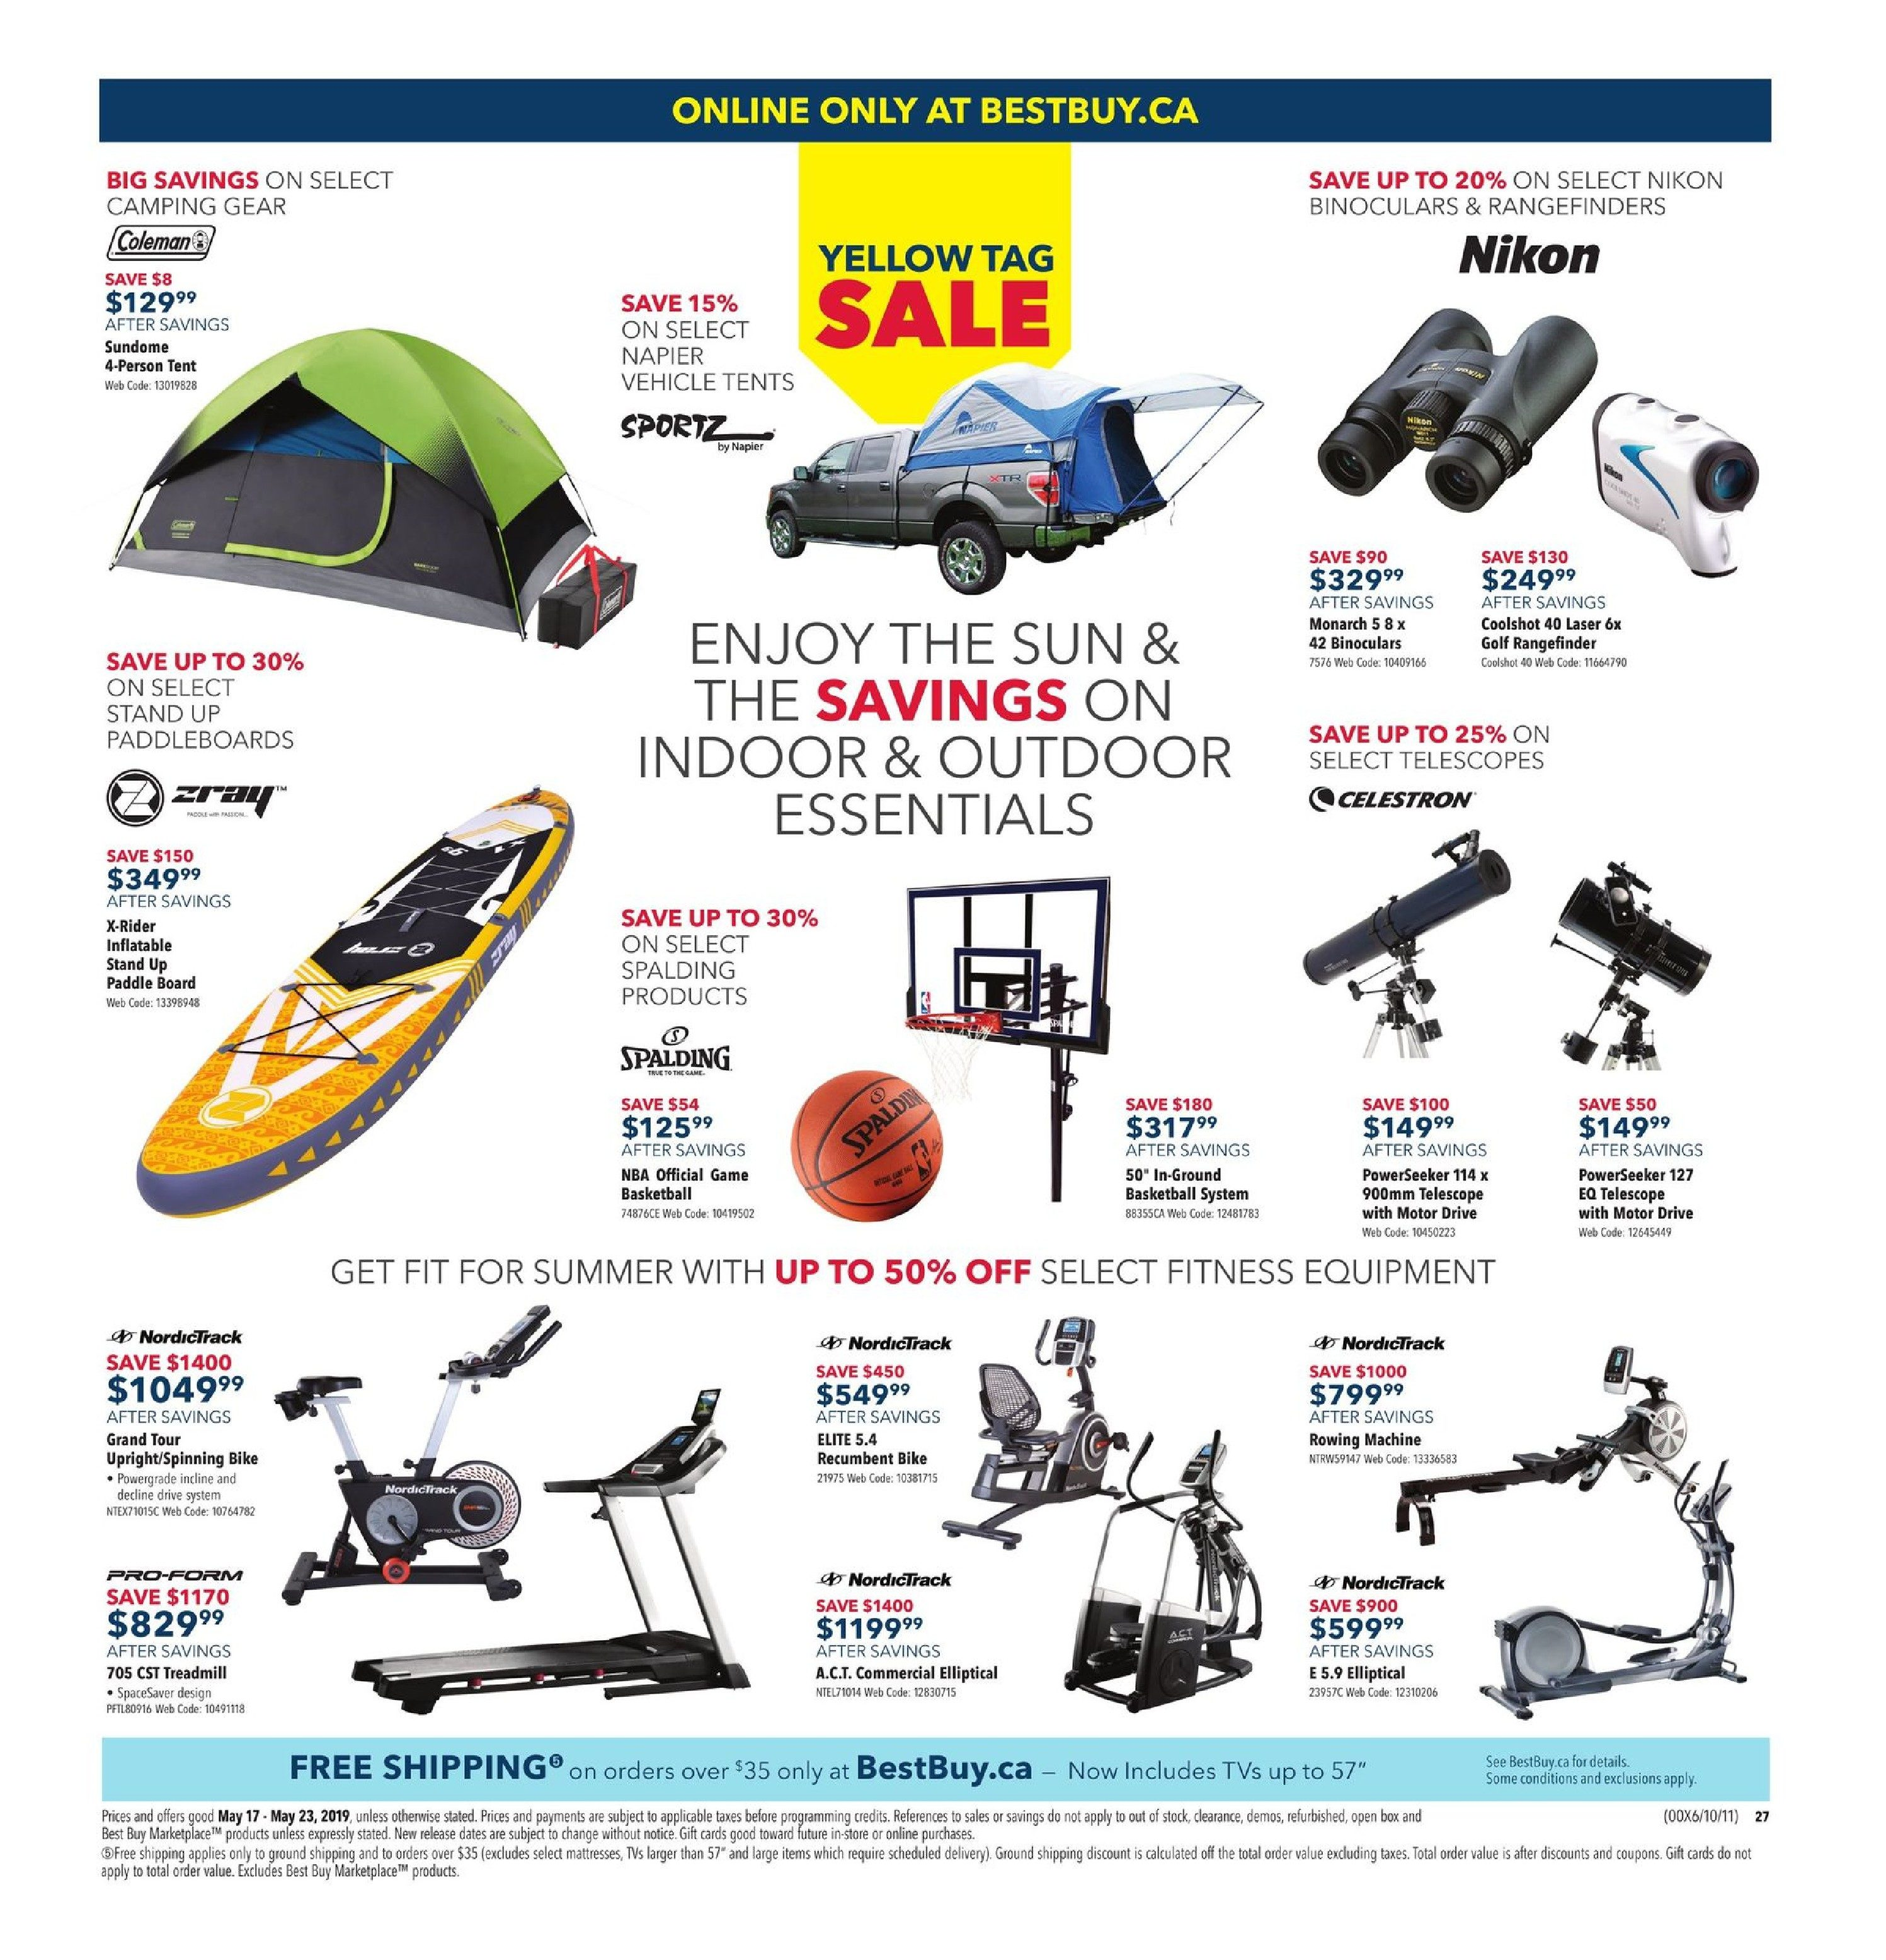 Best Buy Weekly Flyer - Weekly - Yellow Tag Sale - May 17